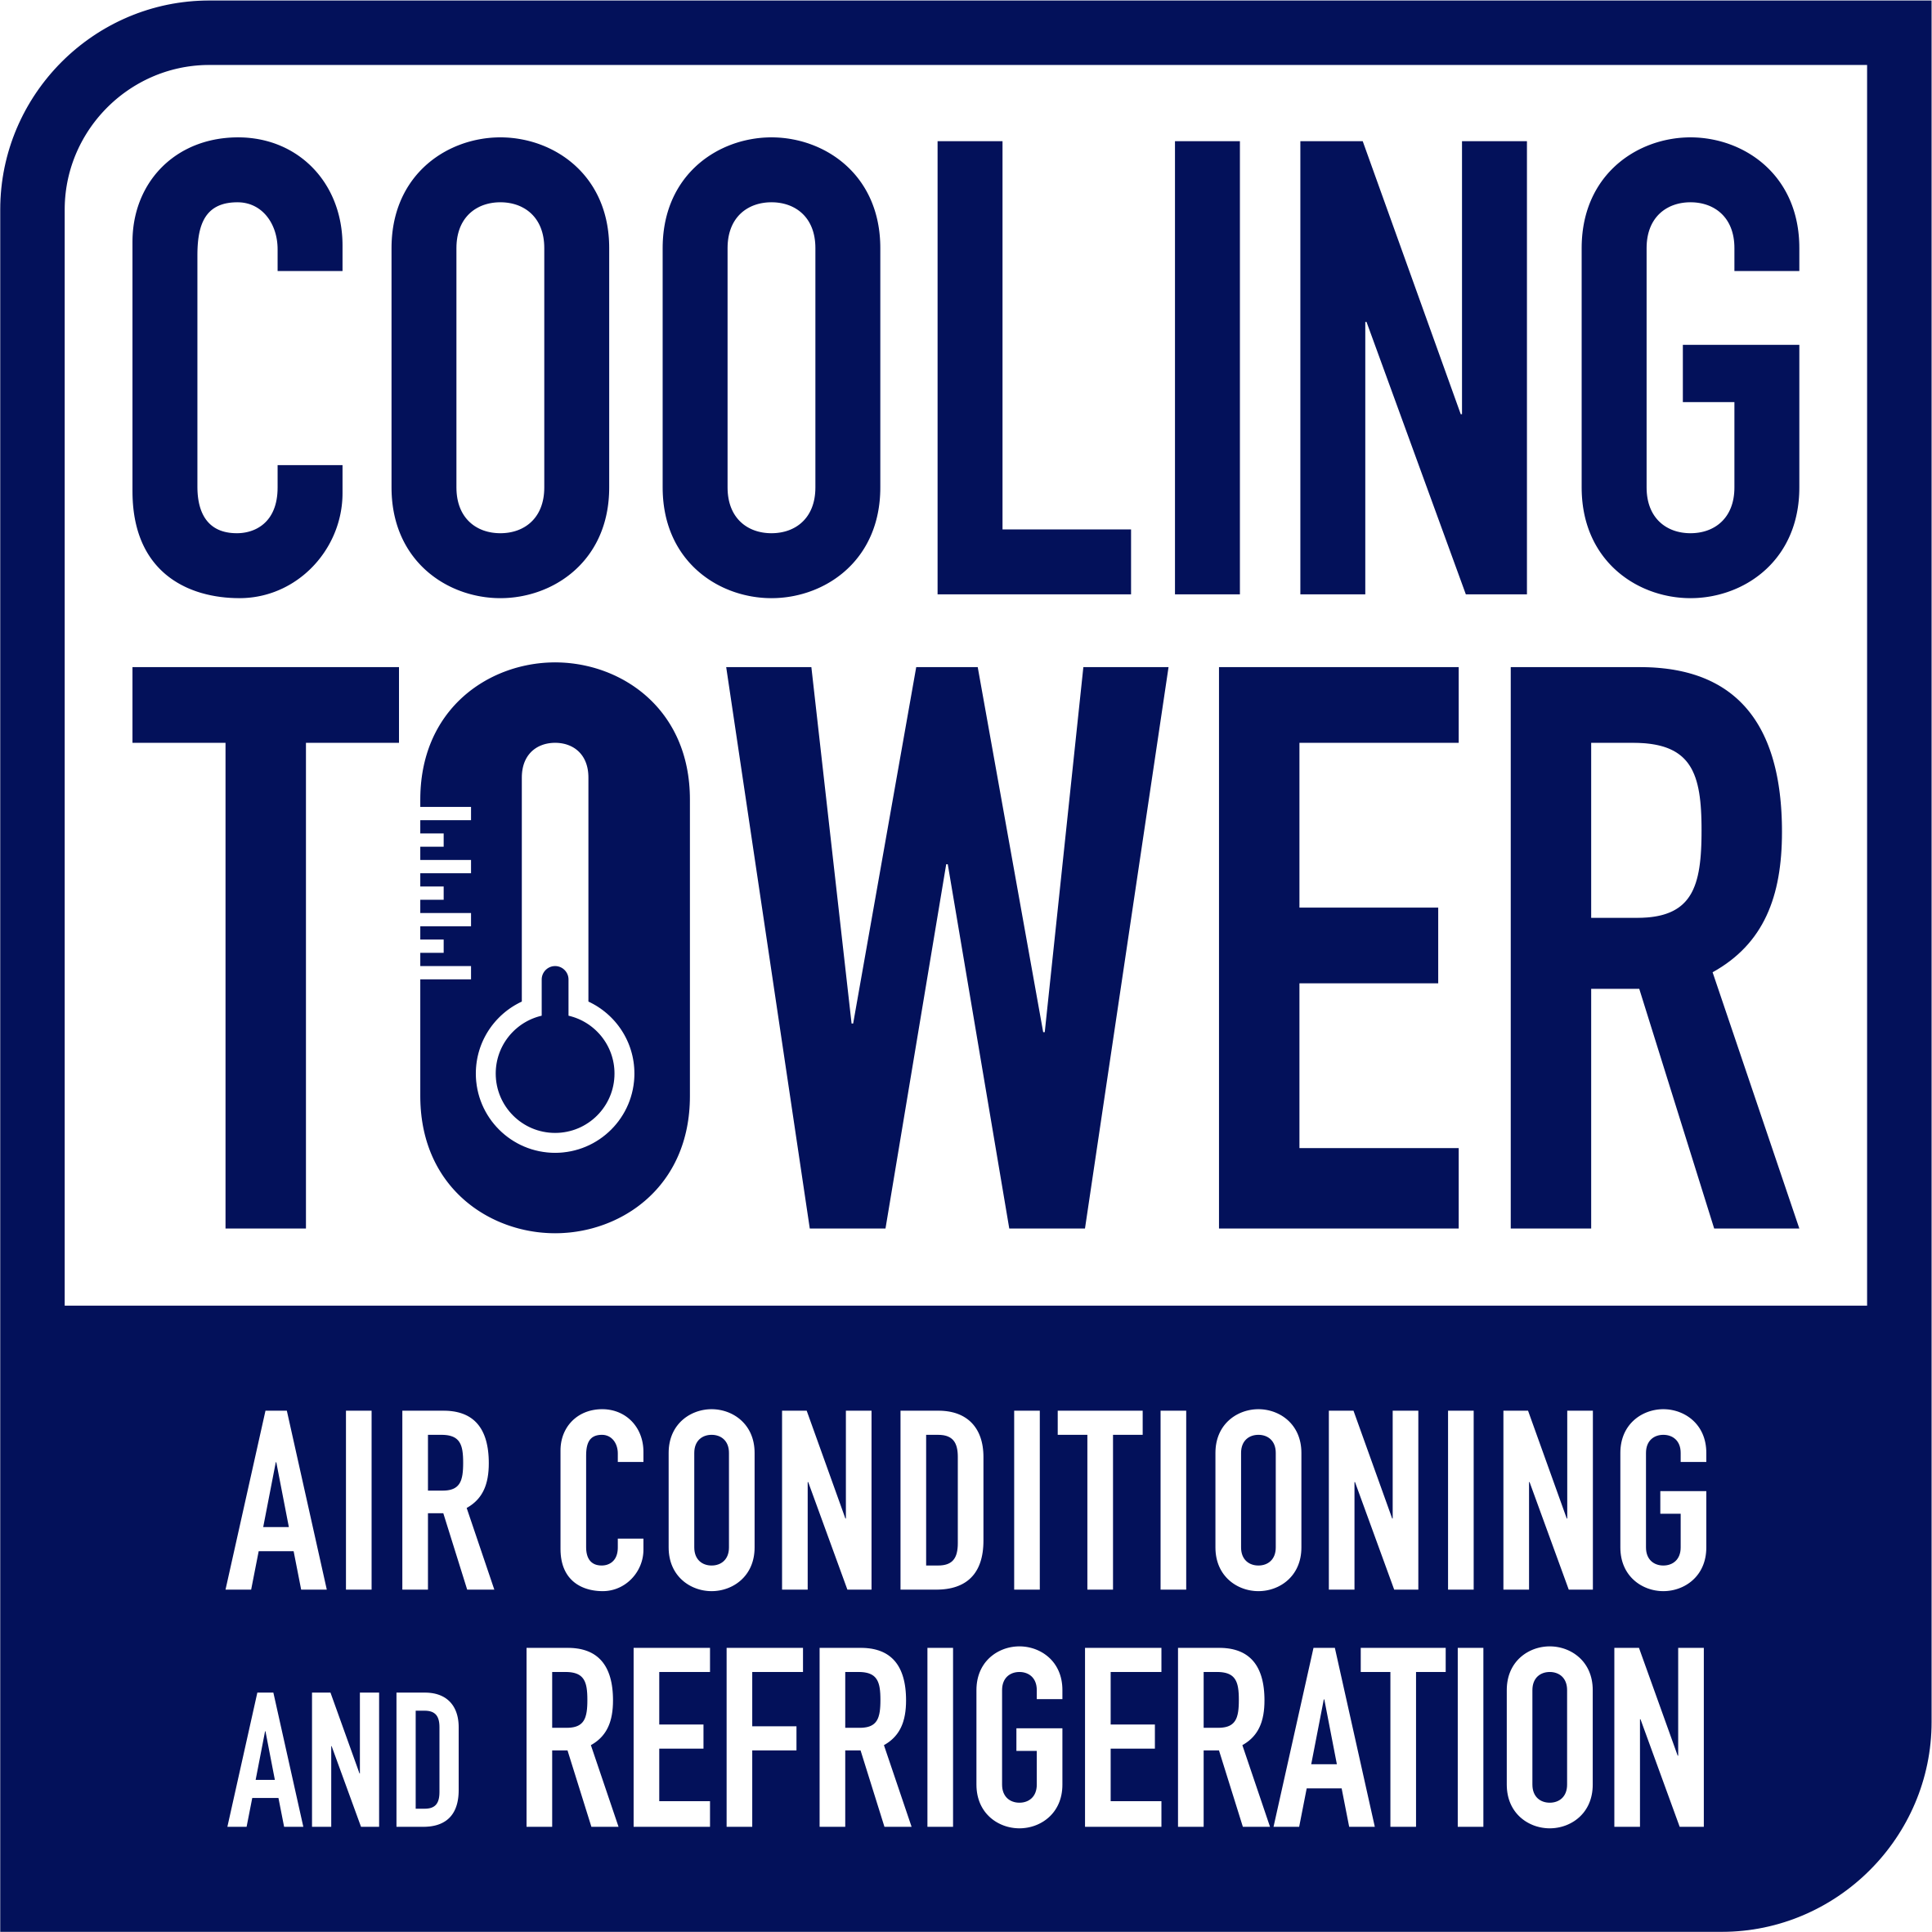 Cooling Tower AC logo